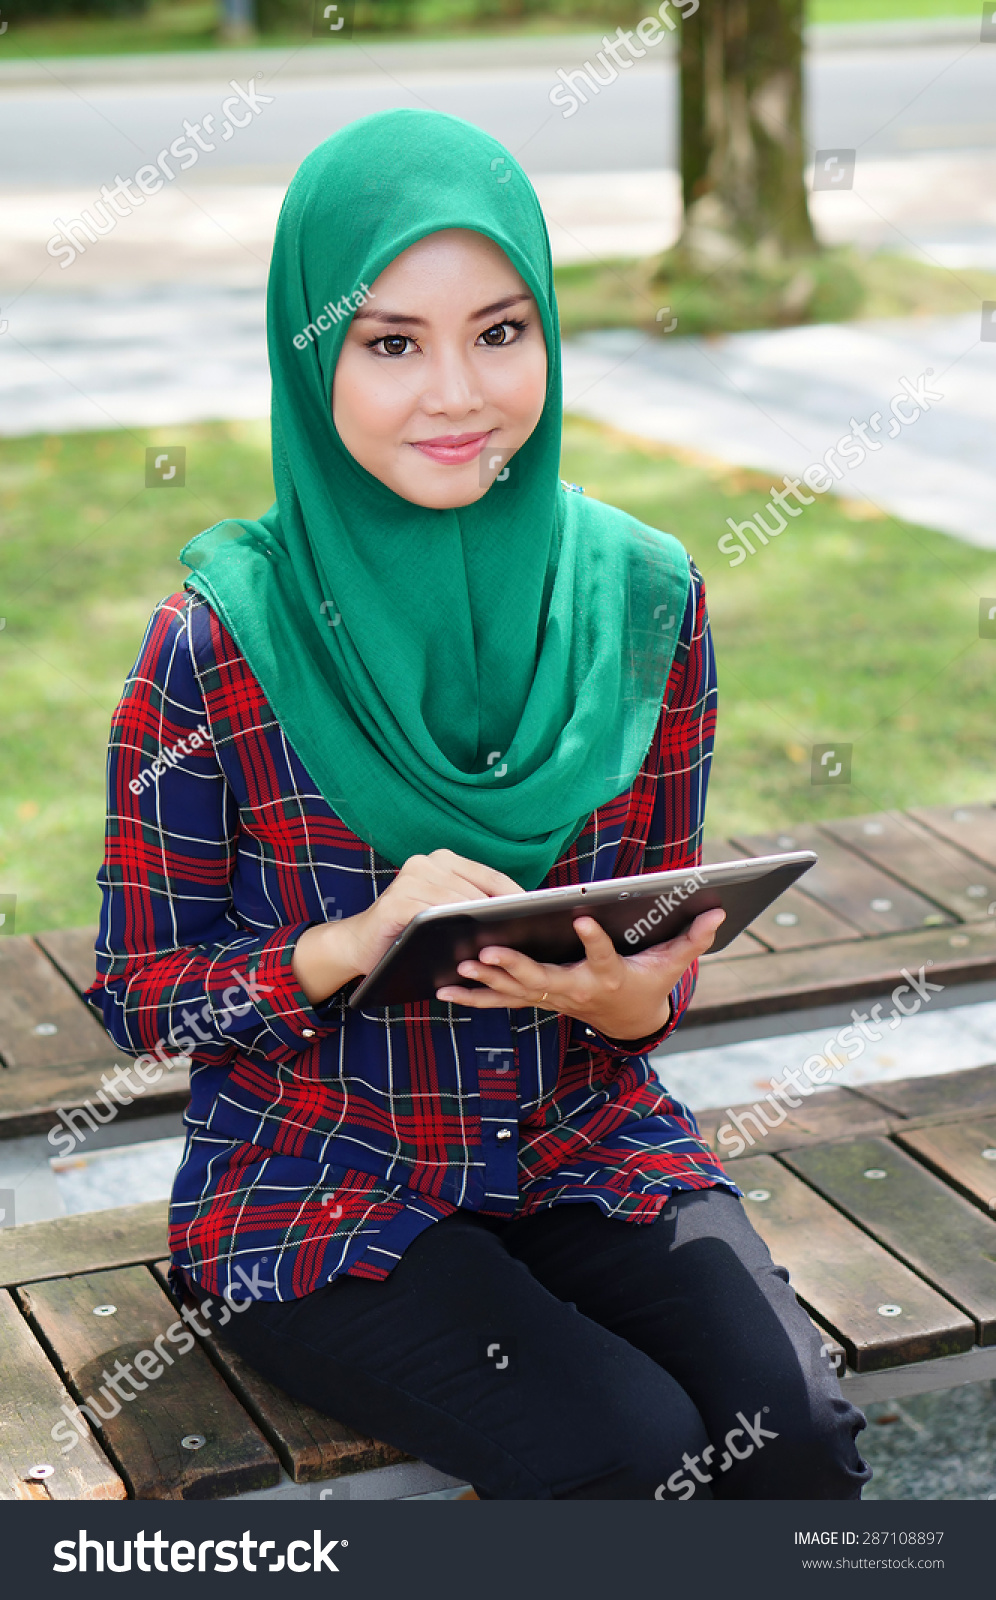 garden single muslim girls Meet muslim women and find your true love at muslimacom sign up today and browse profiles of muslim women for freelink value.